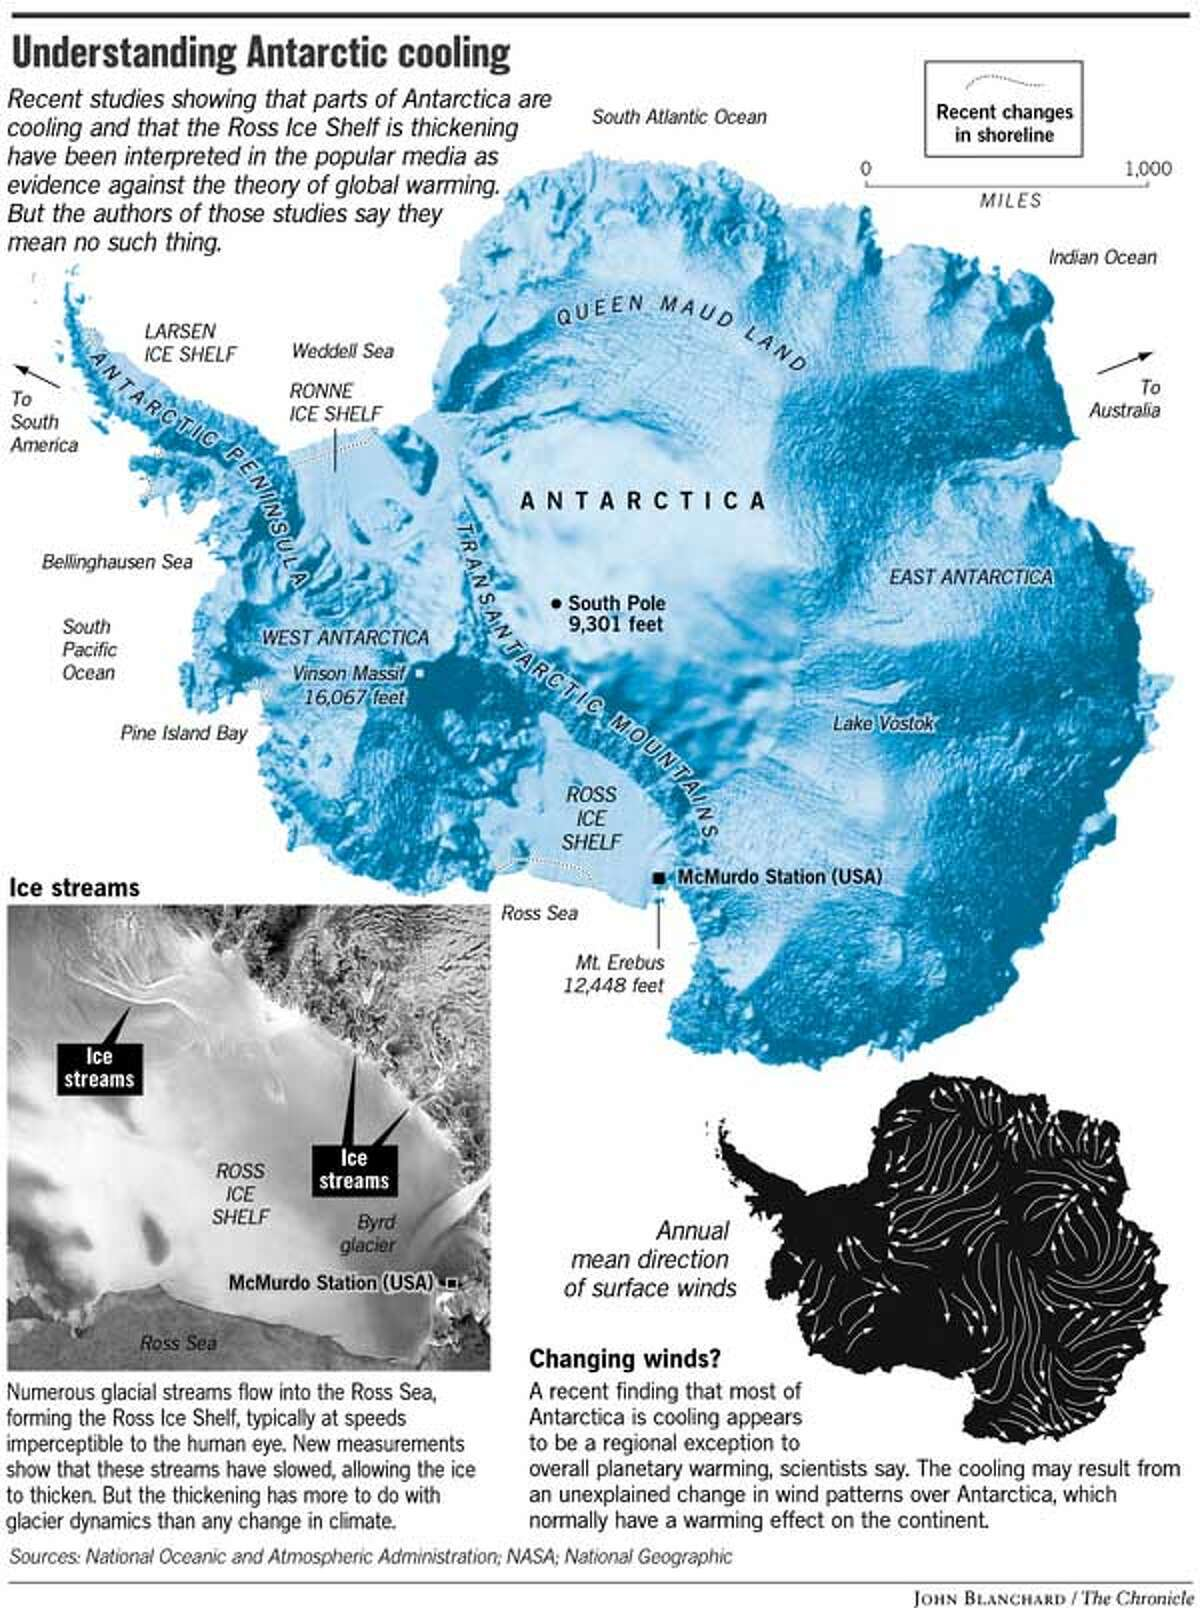 Understanding Antarctic Cooling. Chronicle graphic by John Blanchard